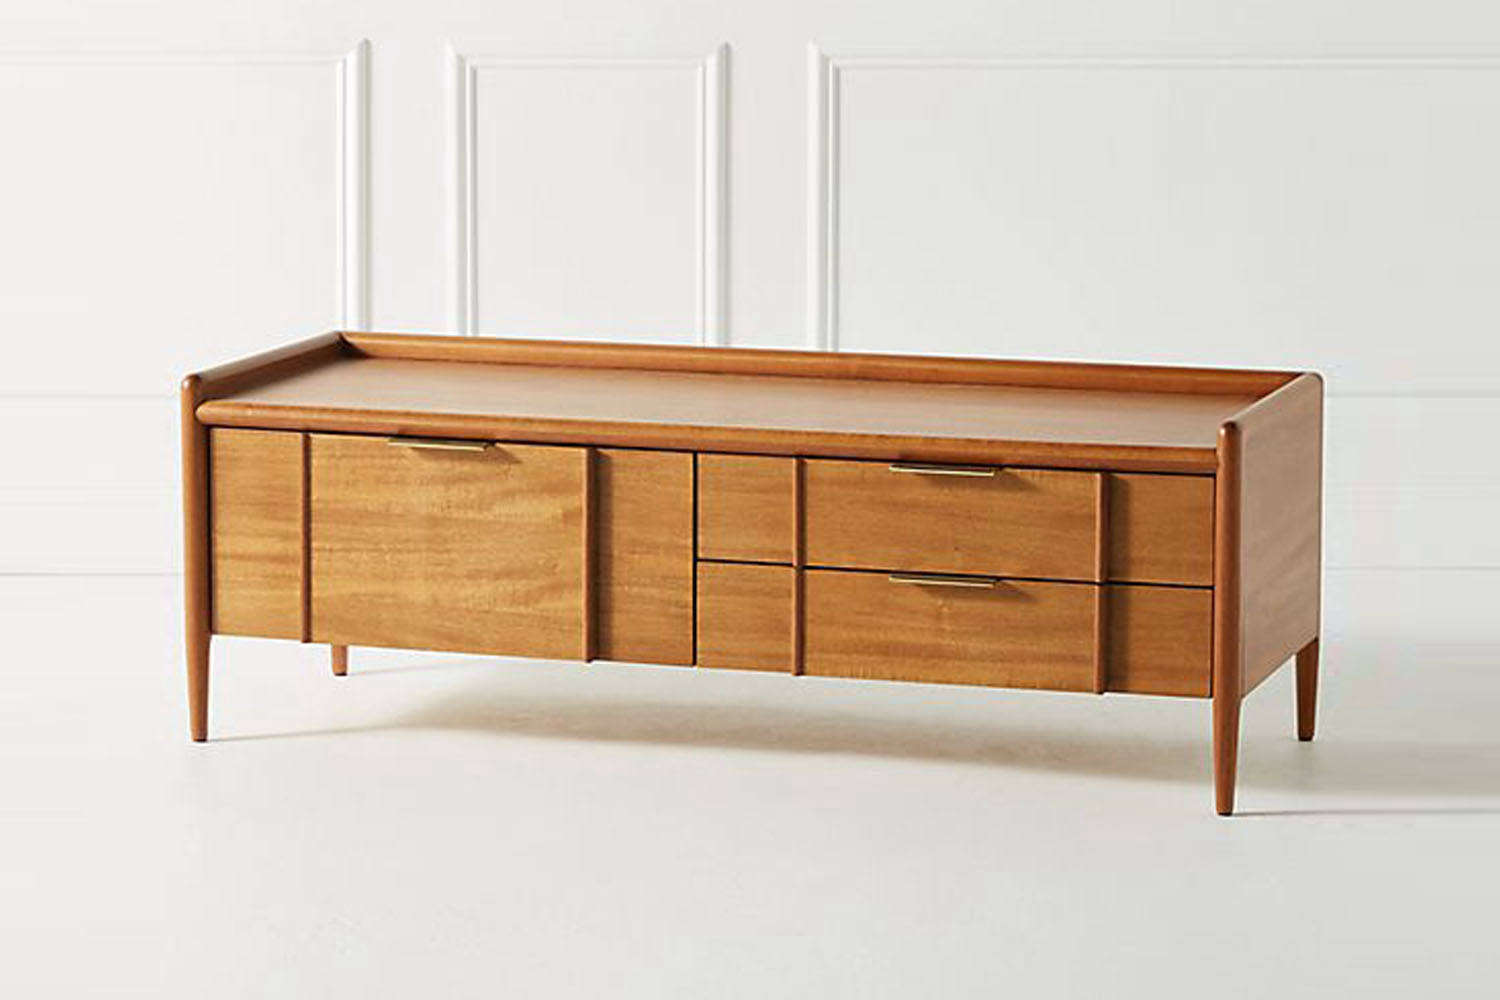 The Quincy Storage Bench in cedar and brass is $598 at Anthropologie.